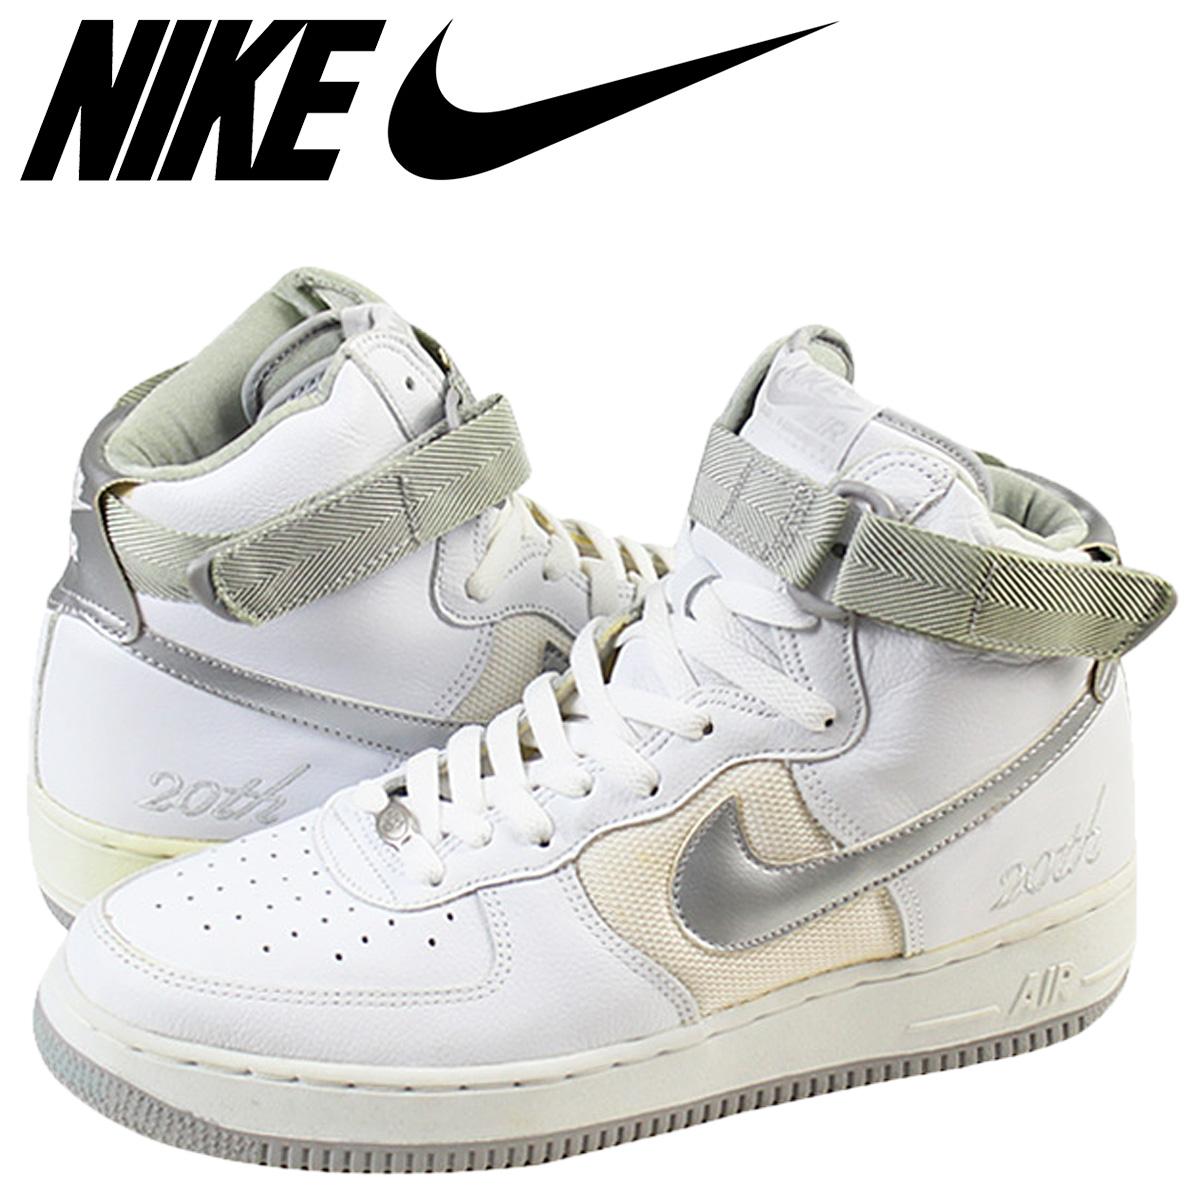 hot sale online c7e98 6b850 302,347-102 white men of the 20th anniversary of NIKE Nike air force 1  sneakers NIKE AIR FORCE 1 HI L M 20th air force 1 high